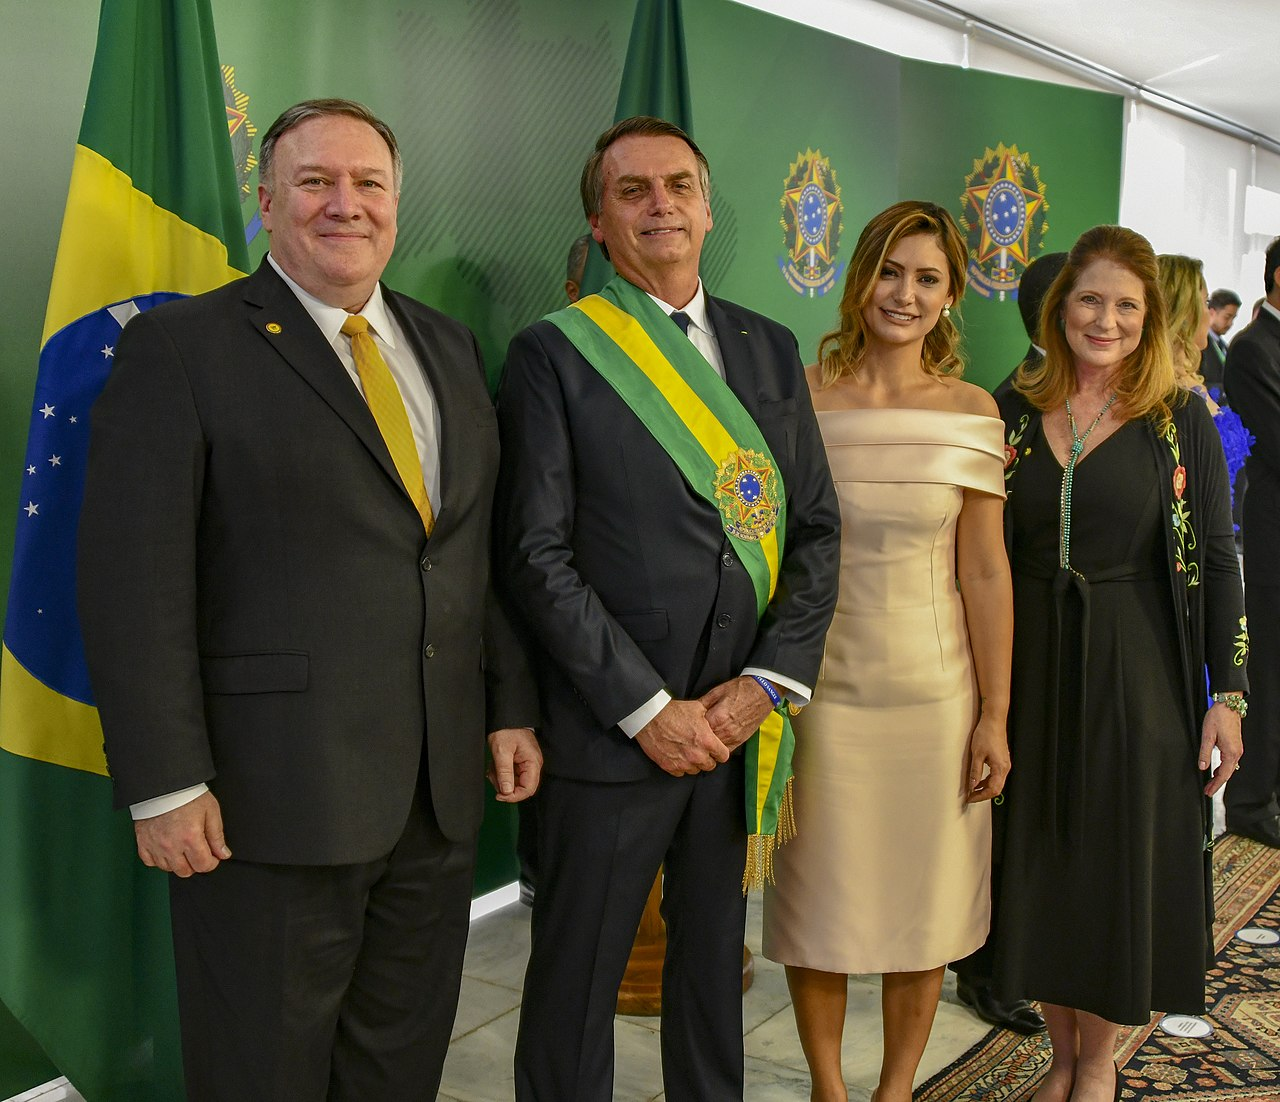 Secretary Pompeo and Mrs. Pompeo Pose for a Photograph With Brazilian President Bolsonaro and First Lady Bolsonaro in Brazil (31619369587).jpg